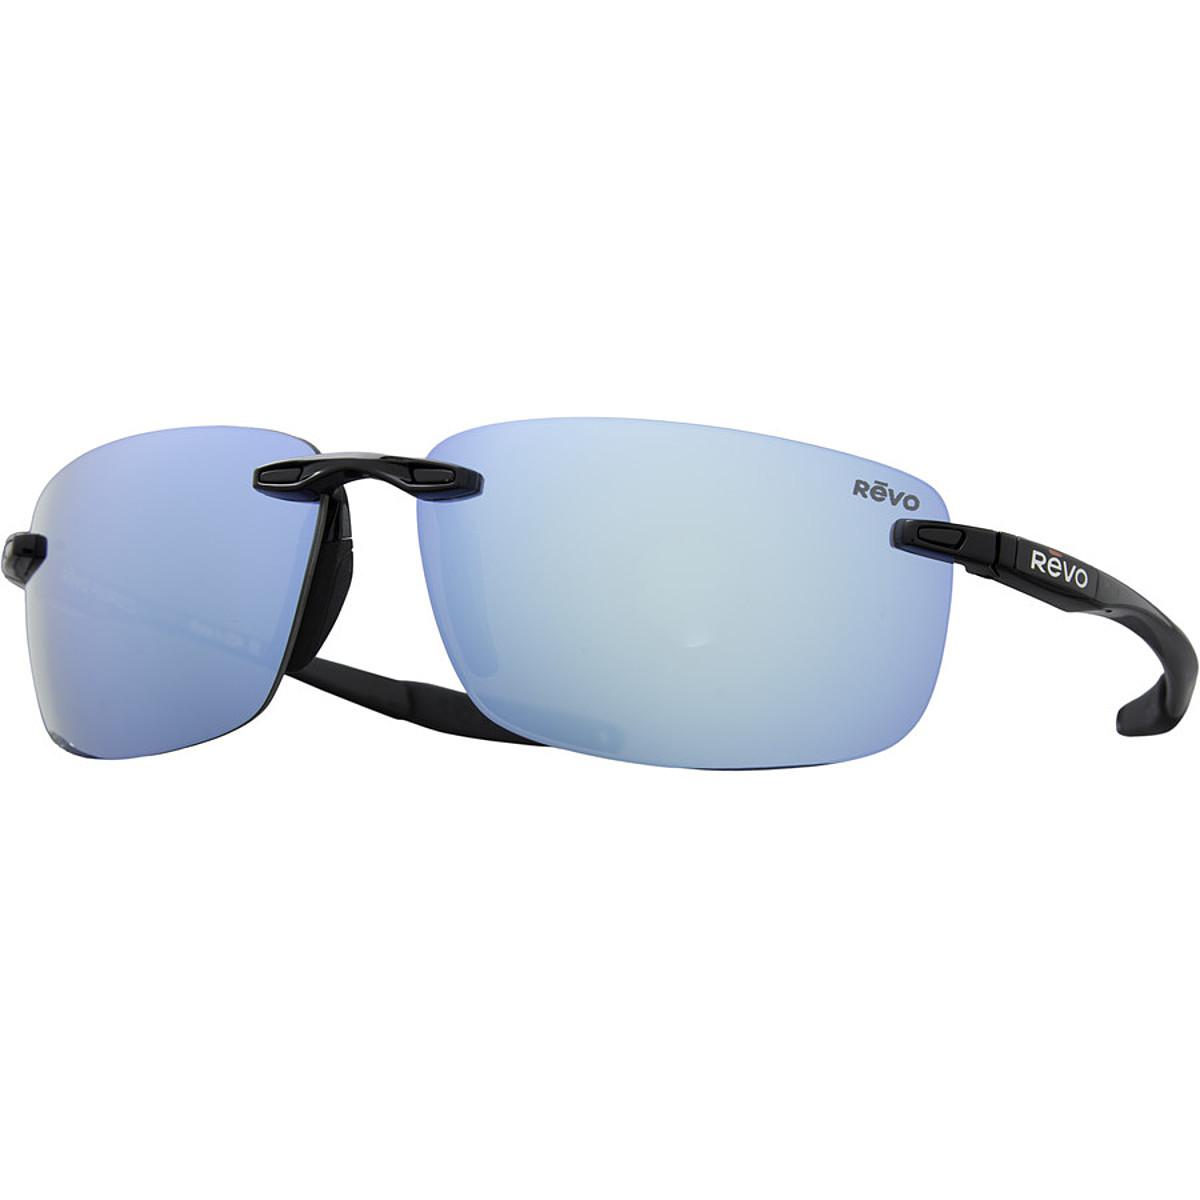 8f017761c2e Revo - Blue Descend N Polarized Sunglasses for Men - Lyst. View fullscreen